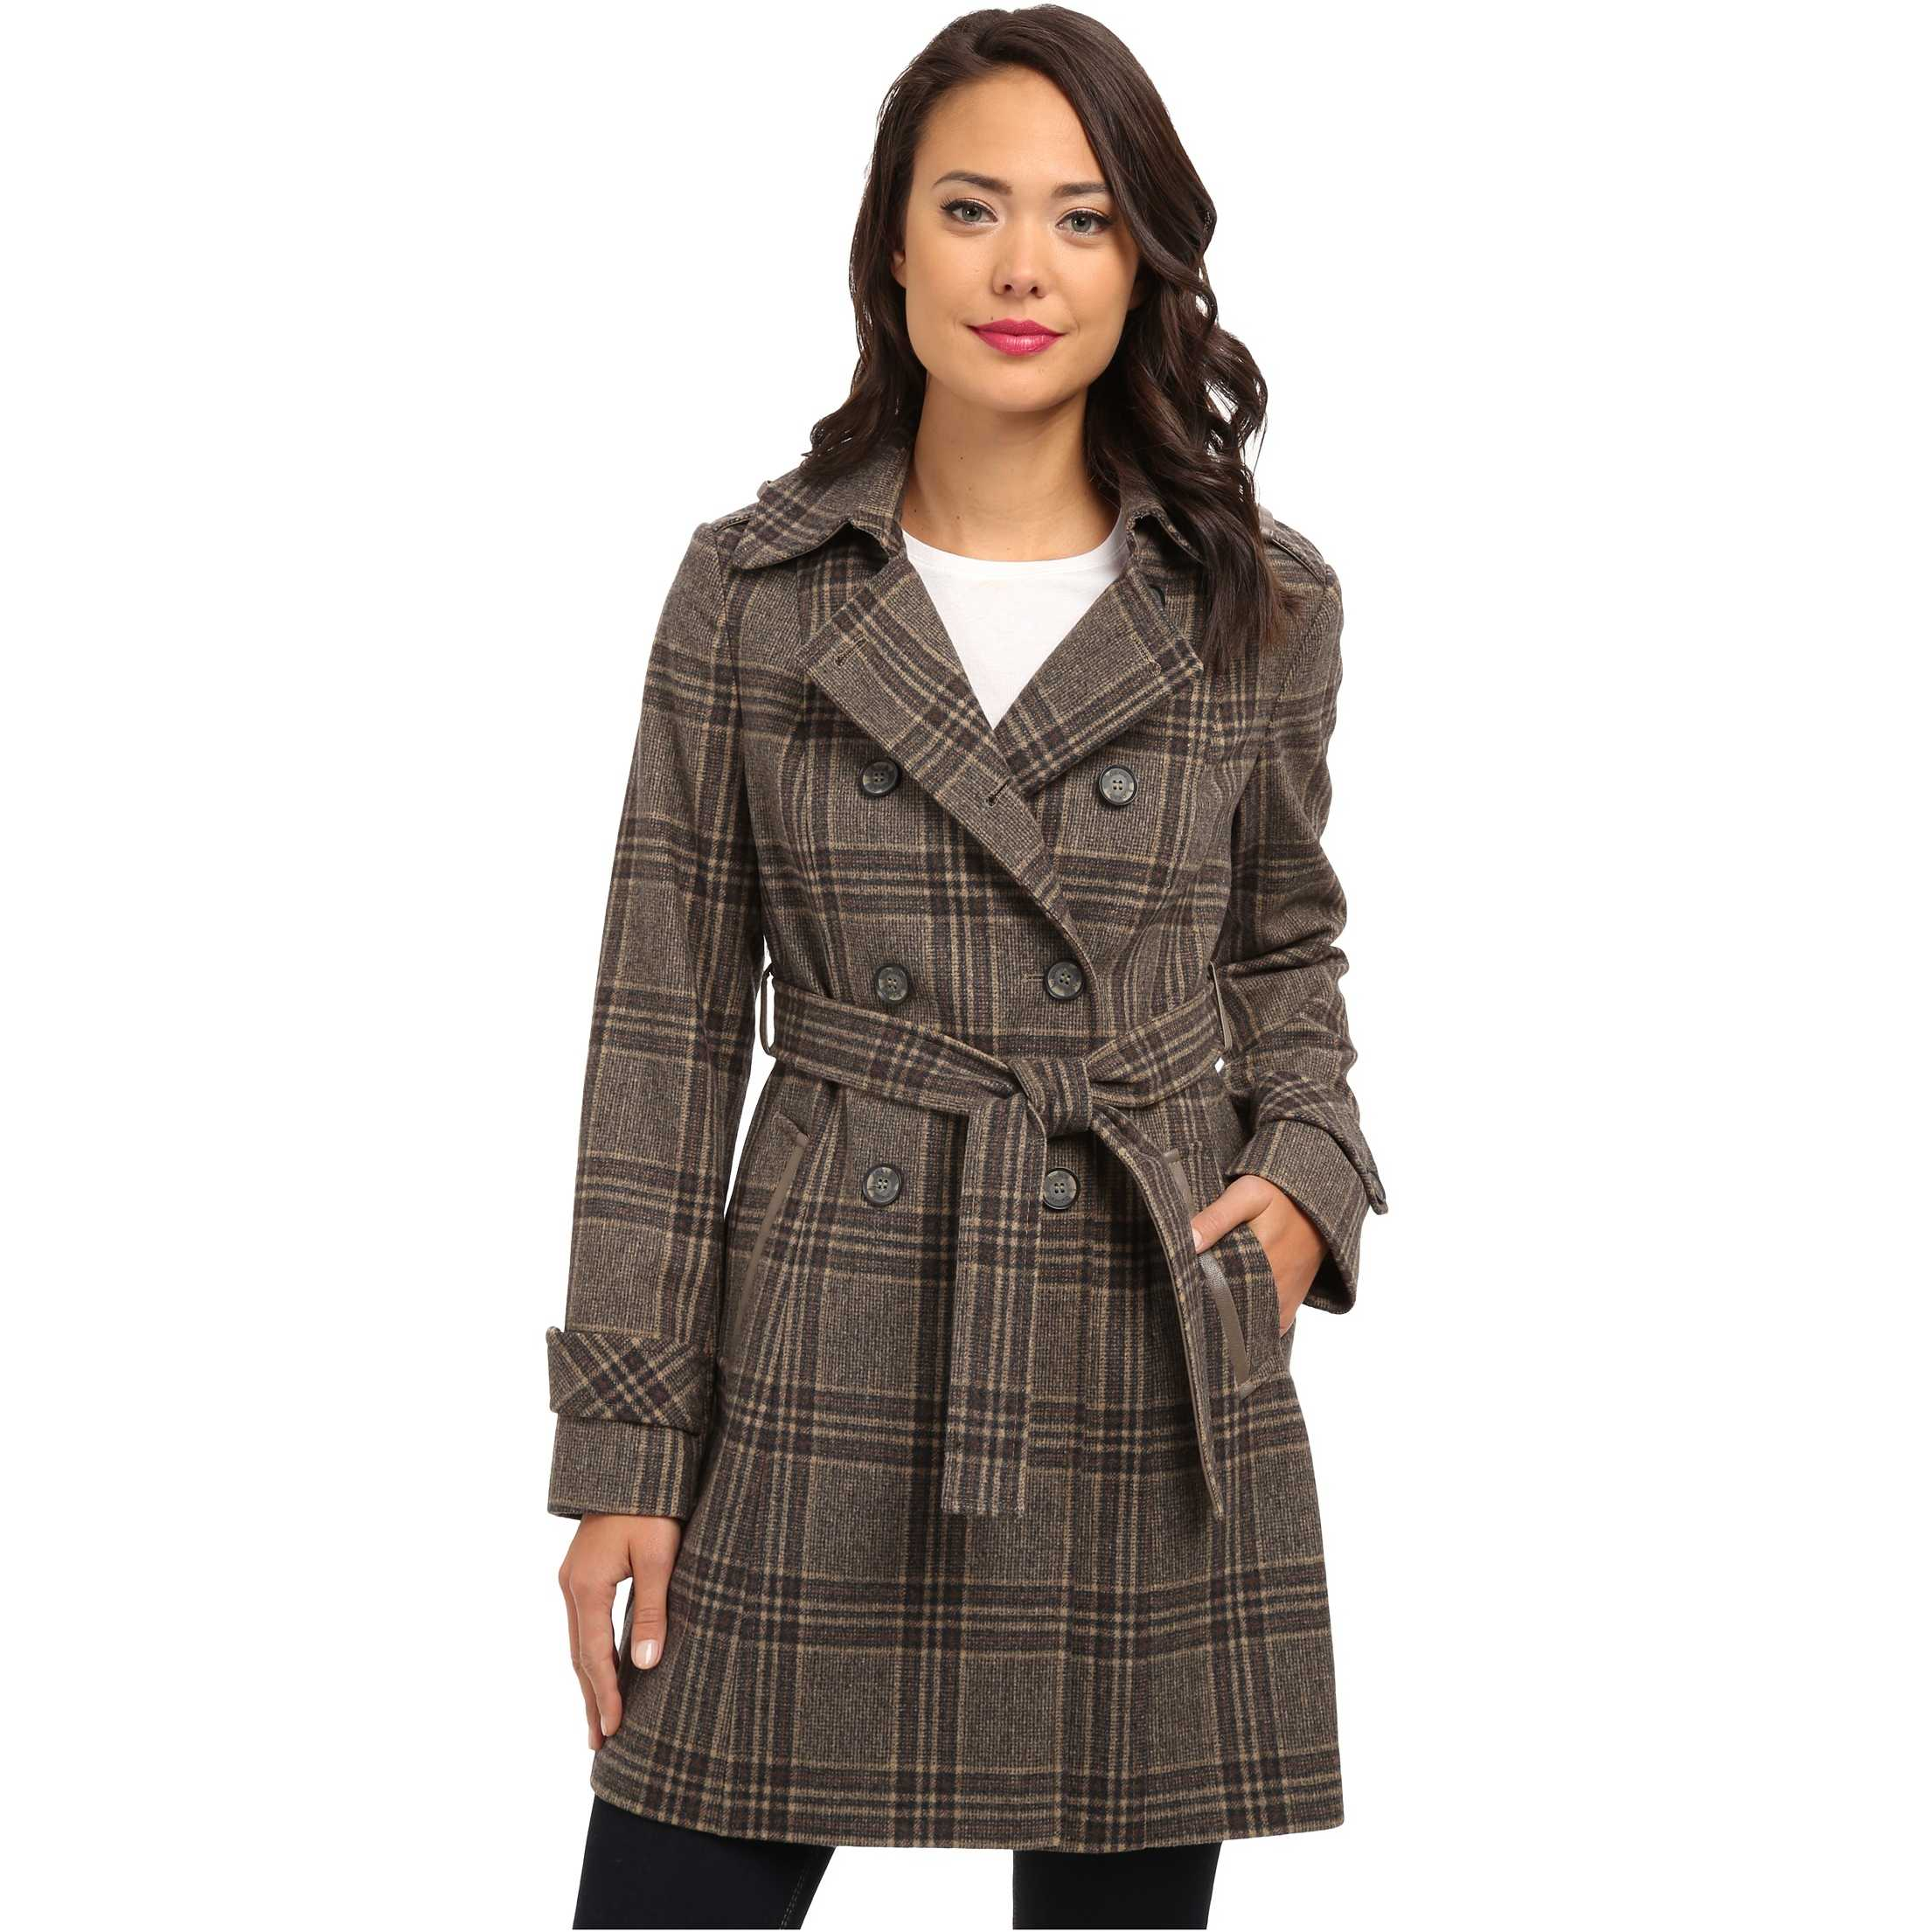 DKNY Double Breasted Menswear Plaid Trench Coat 93809-Y4 Brown Multi trench dama